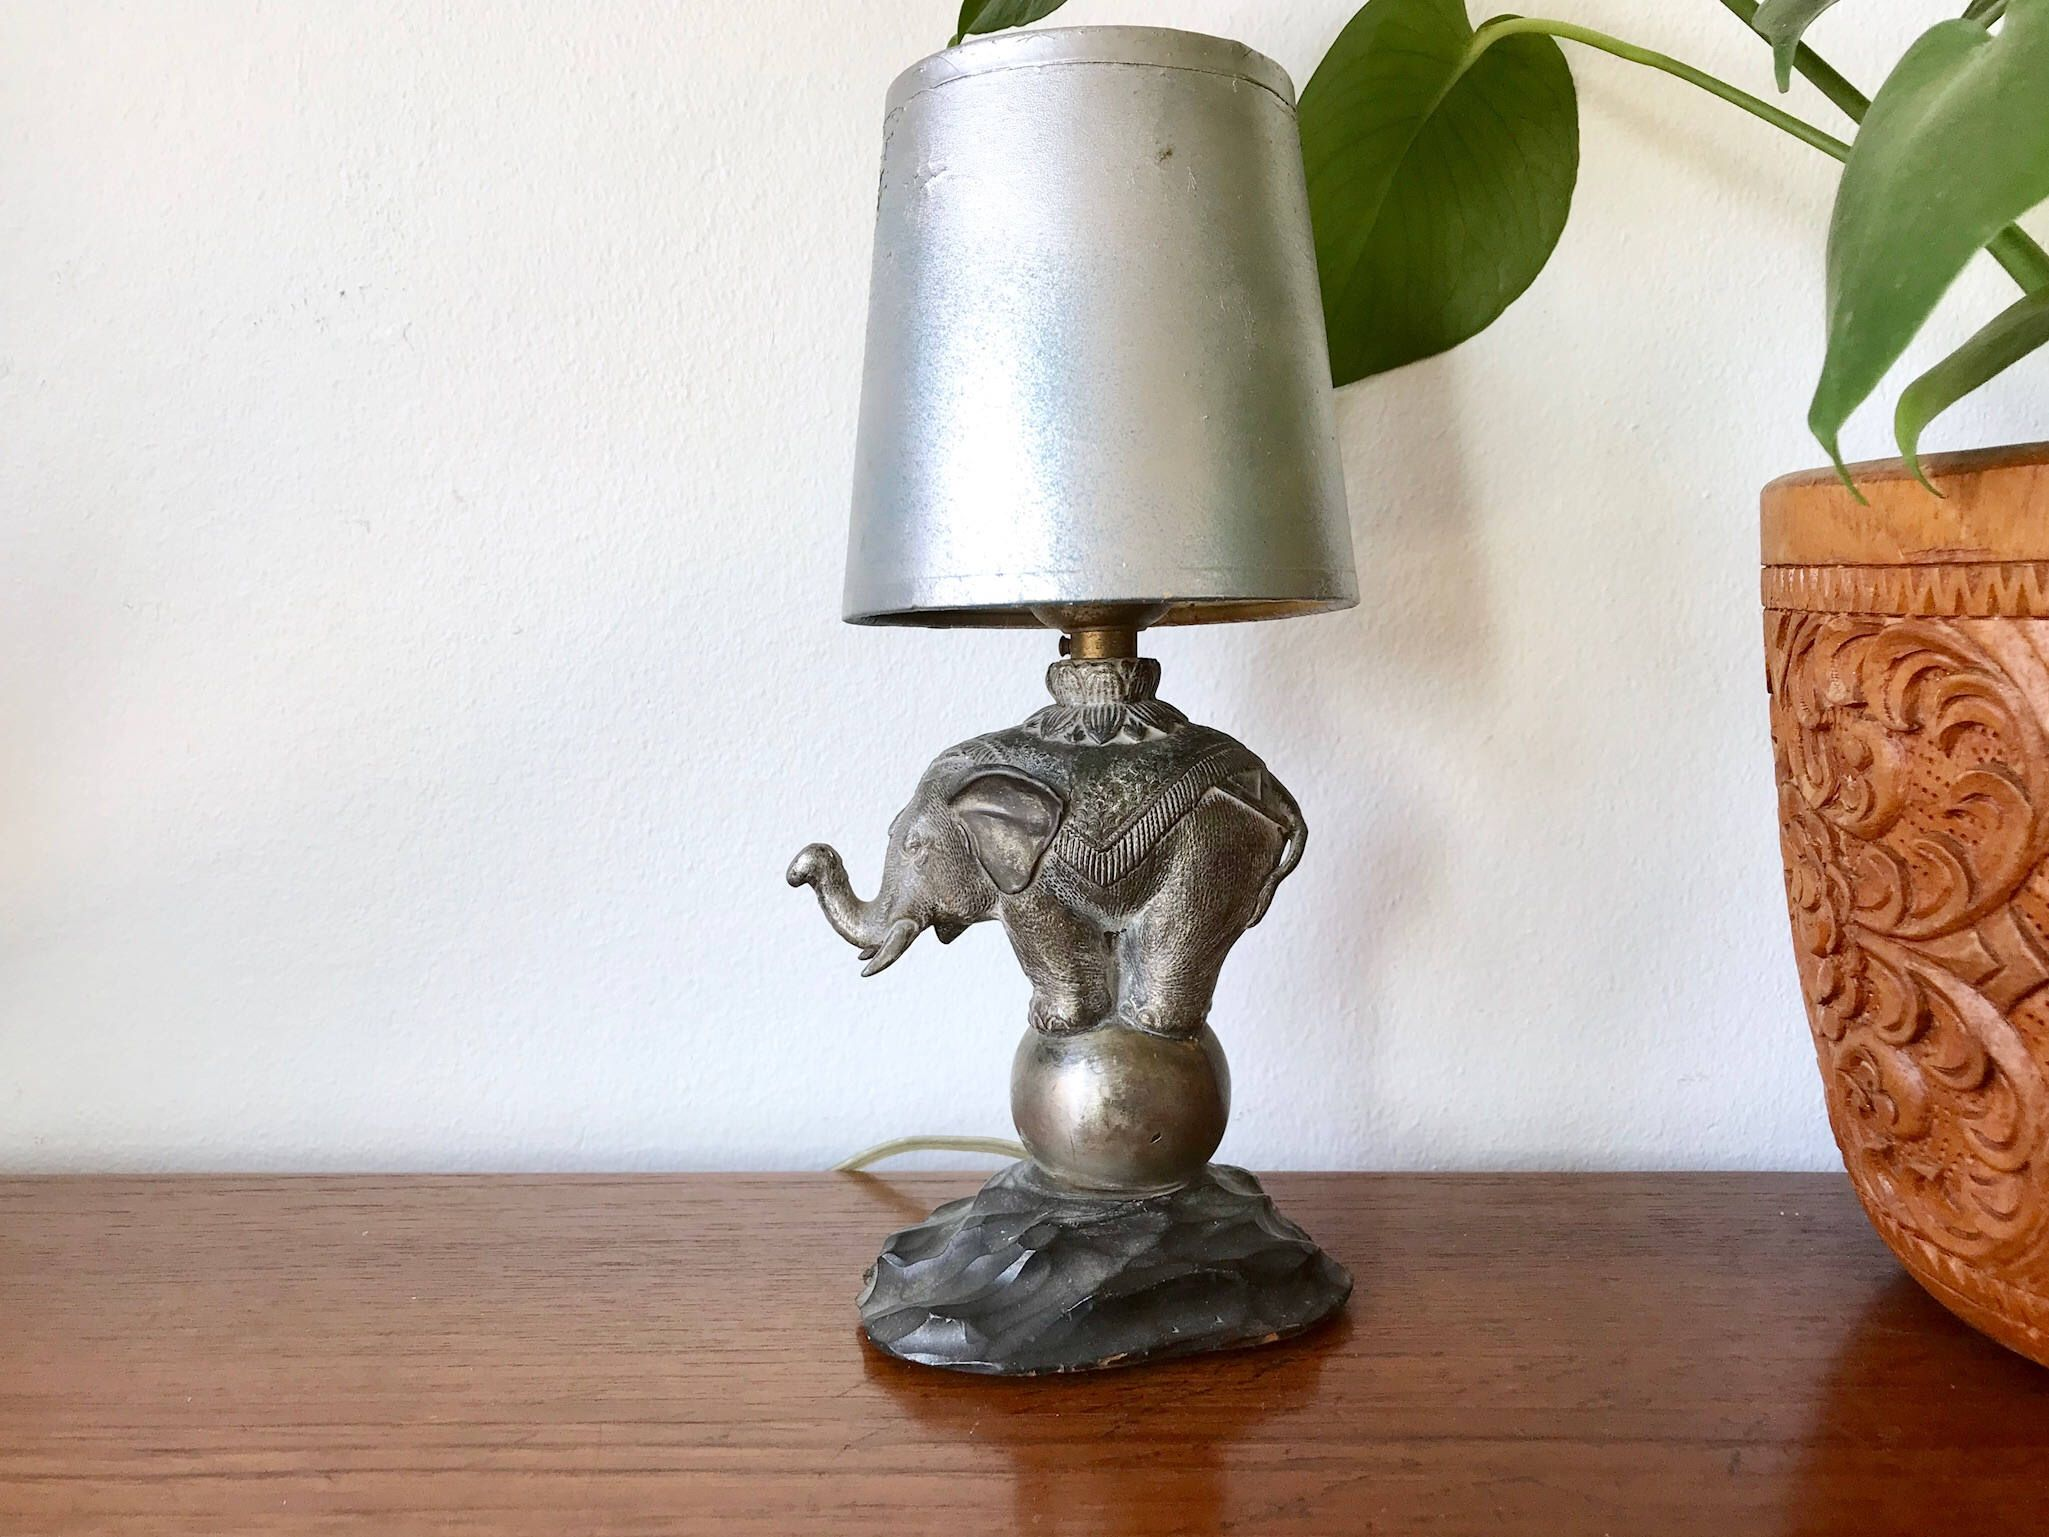 Vintage Brass Elephant Table Lamp Carved Rosewood Base Small Brass Elephant Asian Accent Lamp By Shopra Elephant Table Lamp Painting Lamp Shades Table Lamp